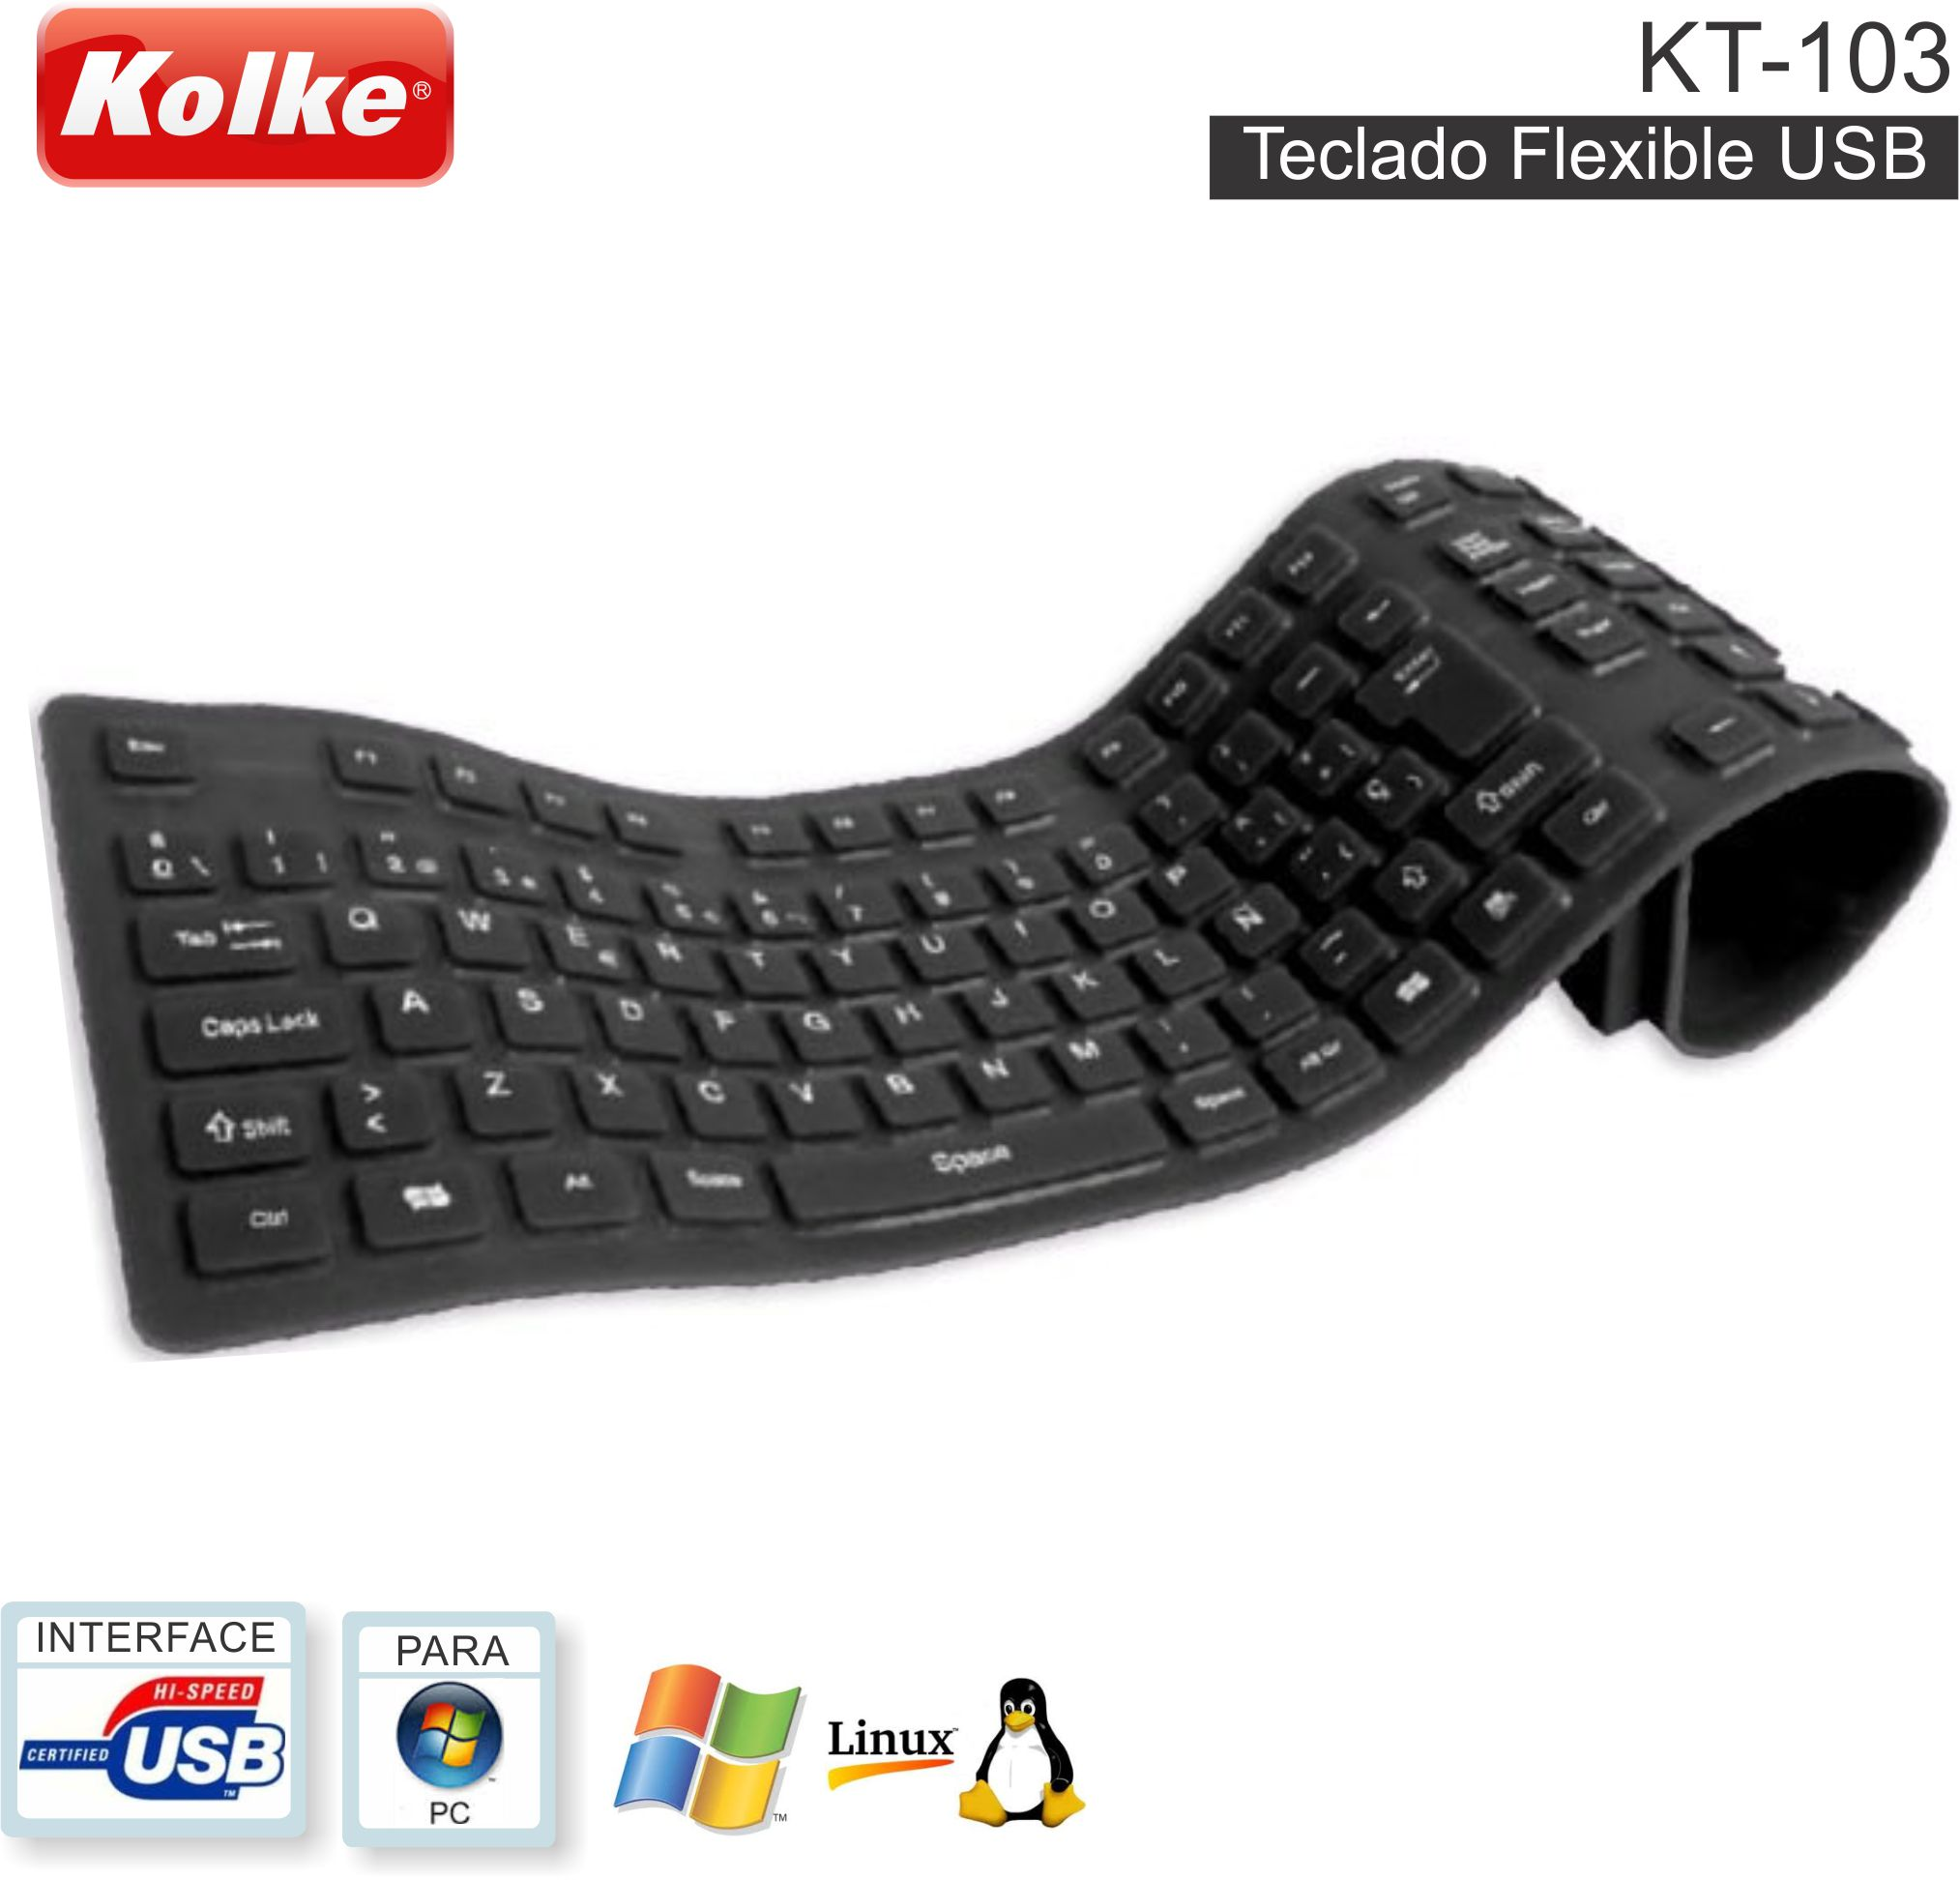 Teclado Flexible USB KOLKE KT-103